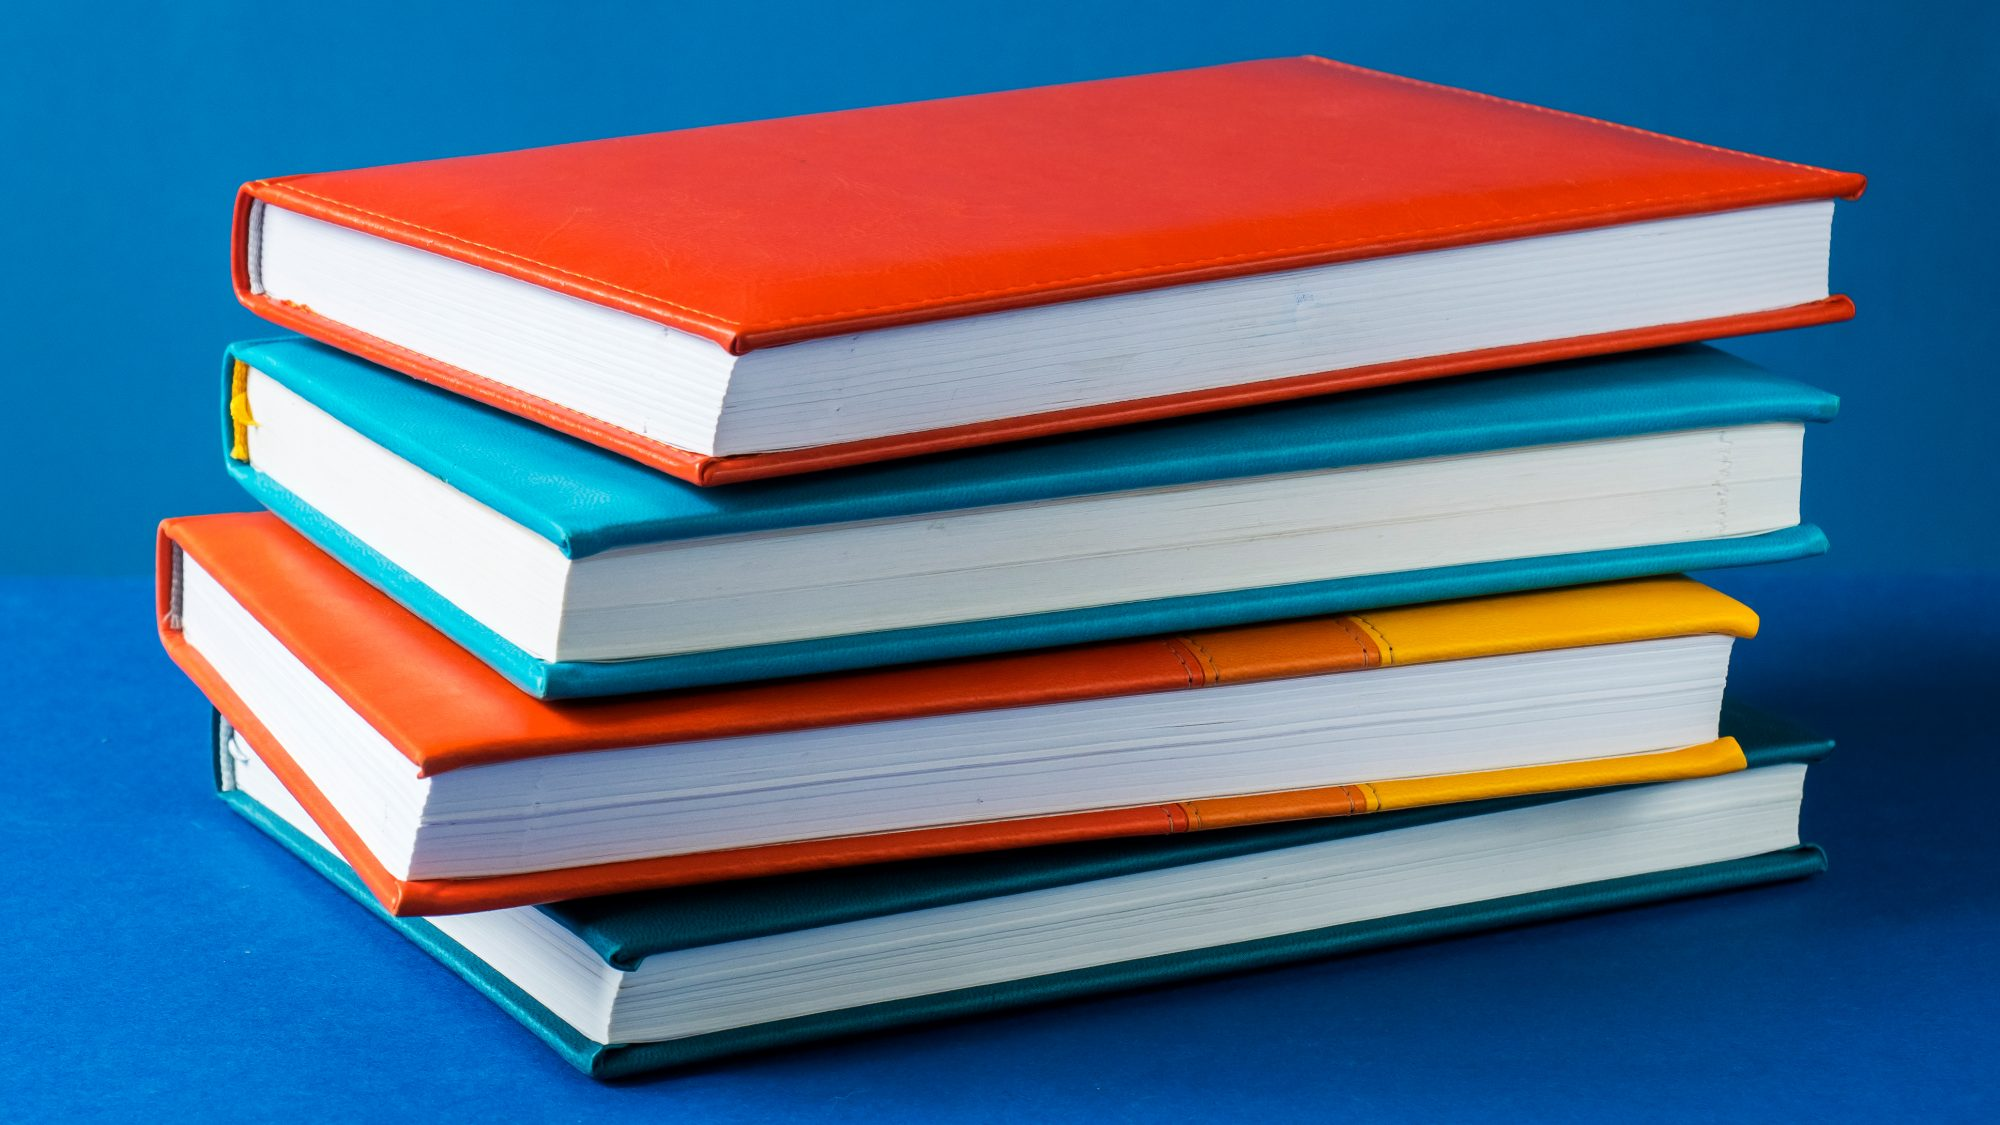 Books for college freshmen - 10 books every new college student should read (stack of books)